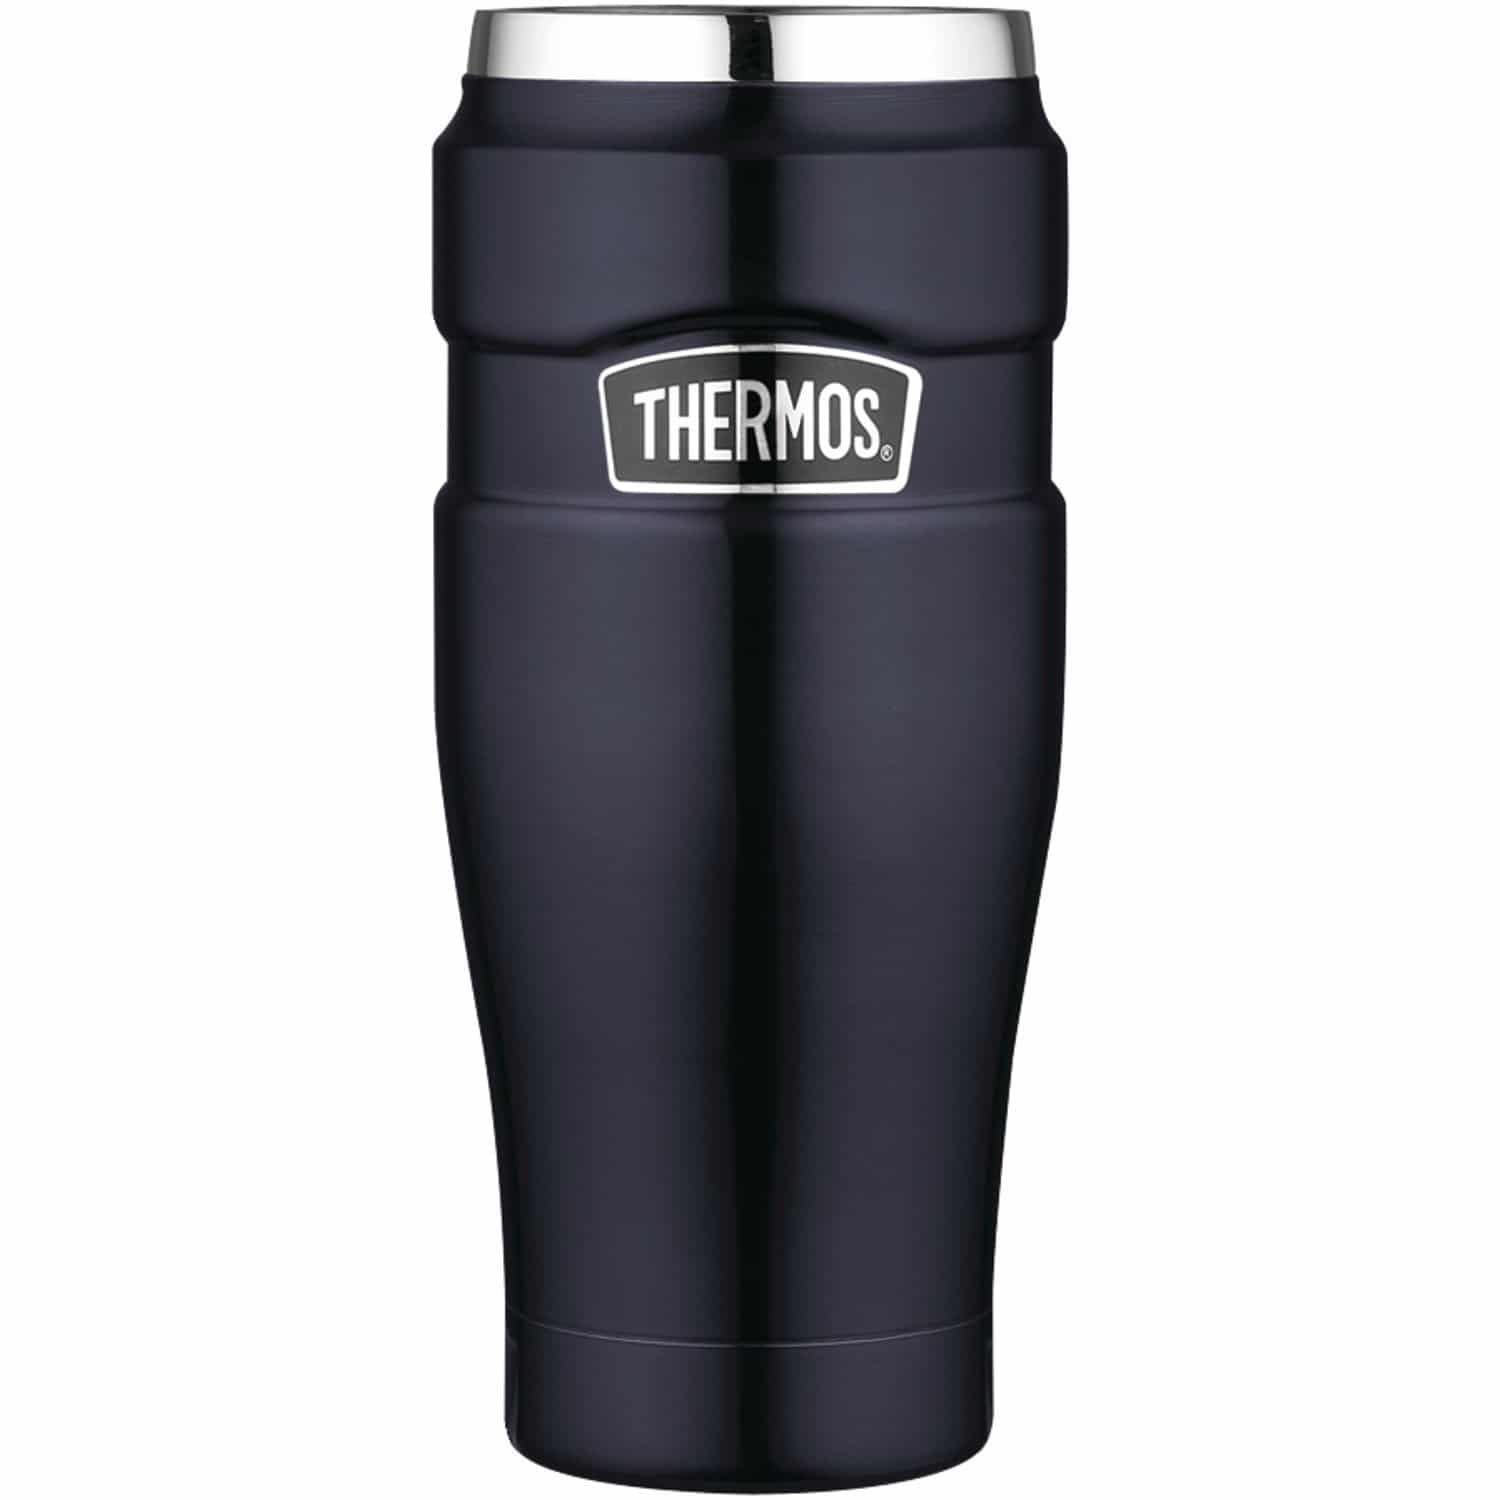 Top 10 Best Stainless Steel Travel Mugs In 2015 Reviews